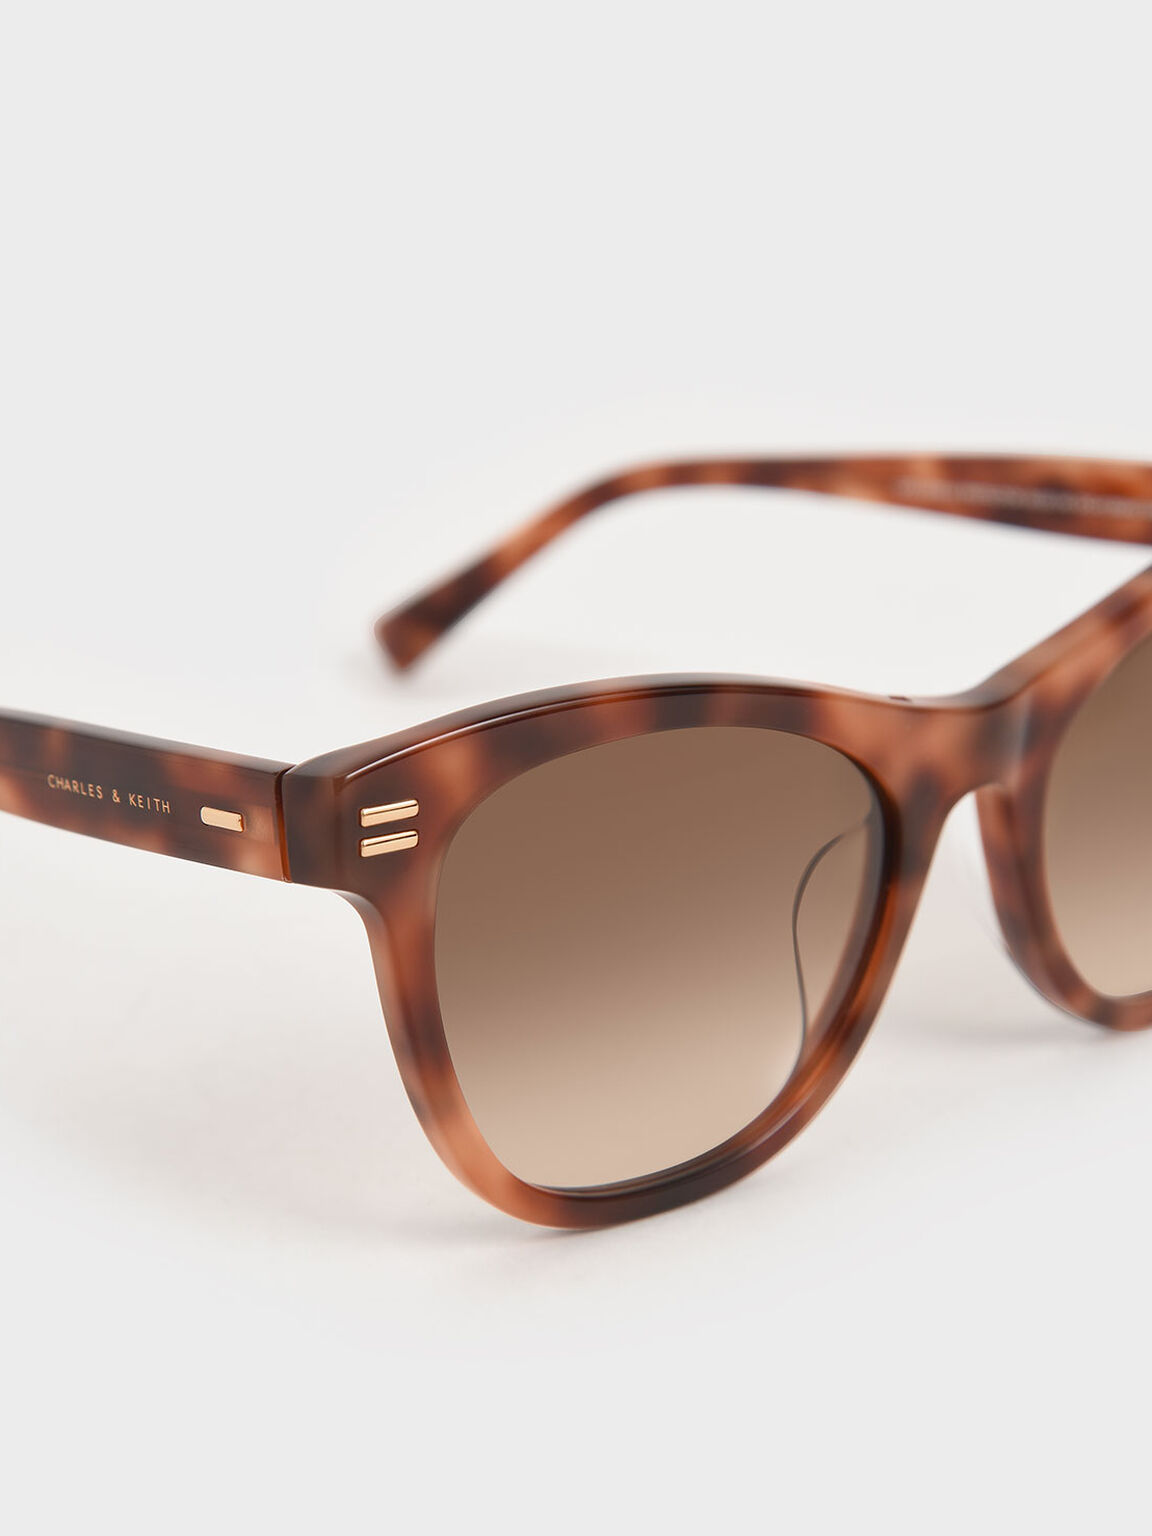 Tortoiseshell Acetate Rectangular Sunglasses, T. Shell, hi-res